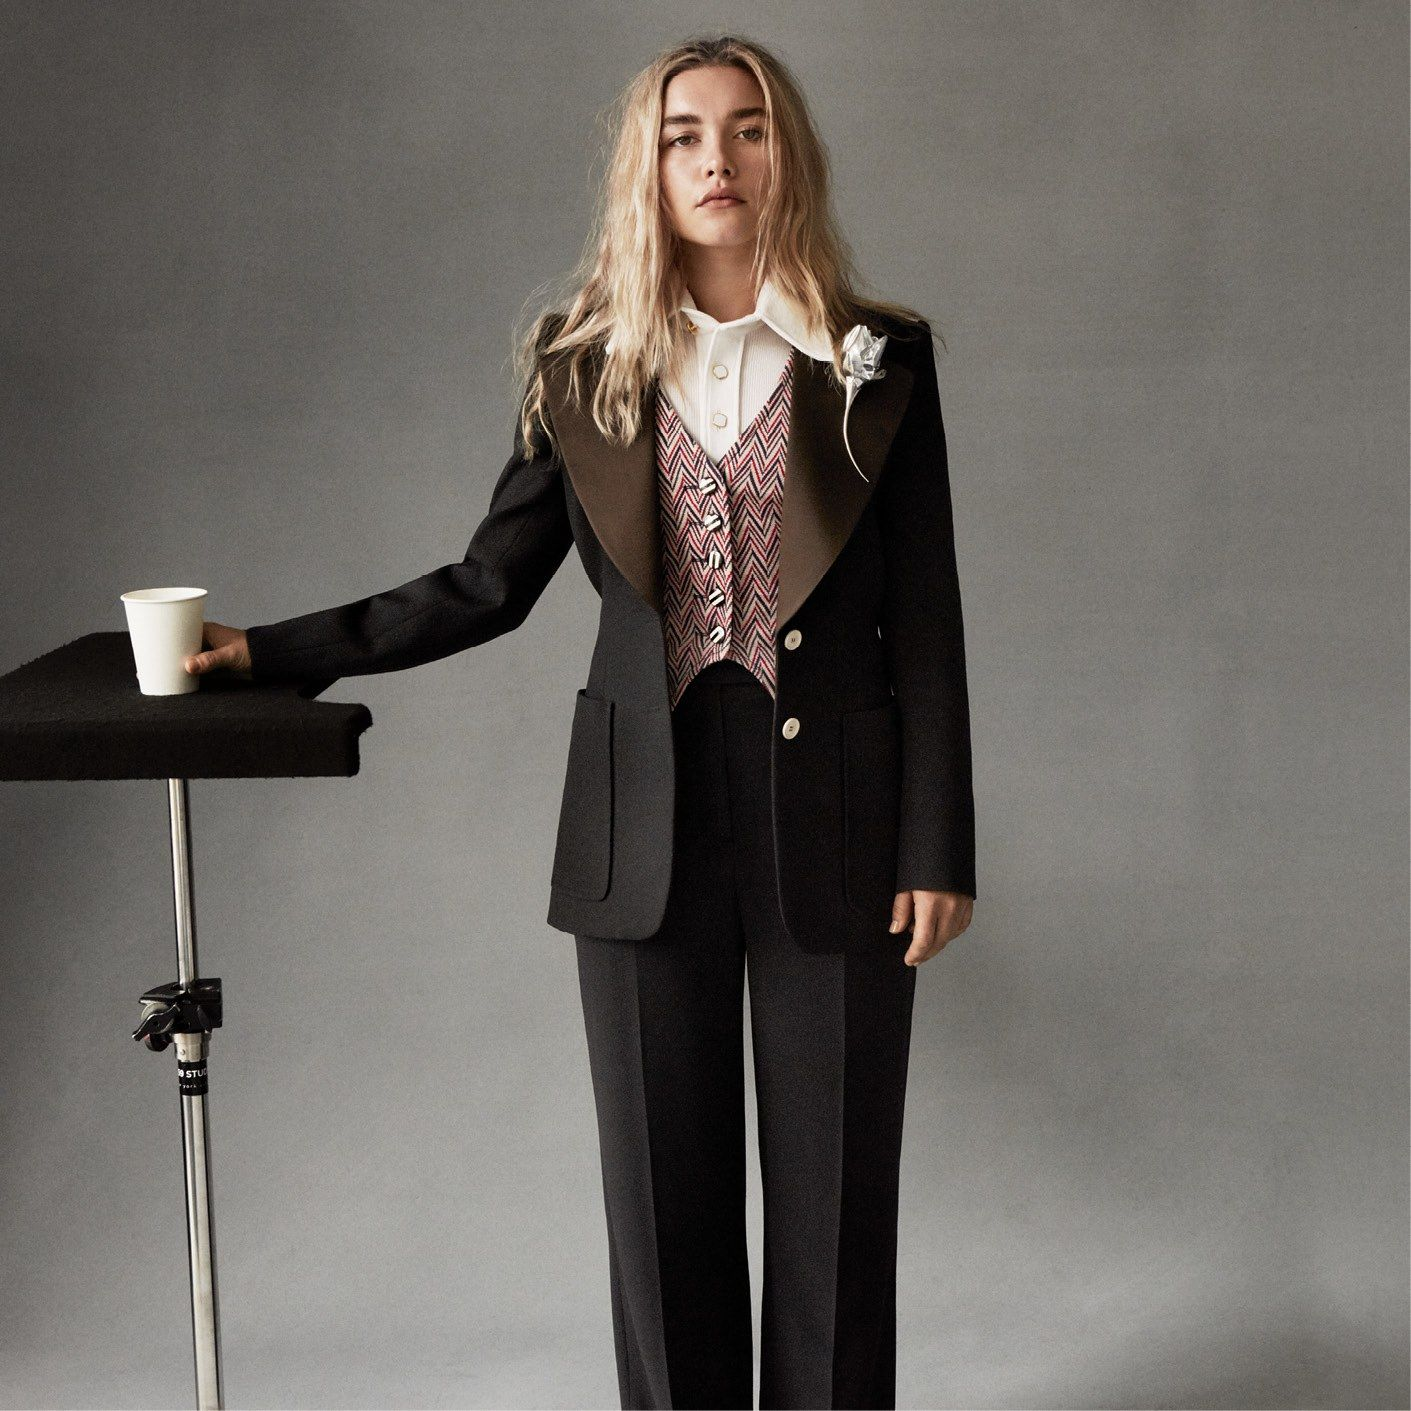 From Little Women to Marvel Superhero, Florence Pugh is a